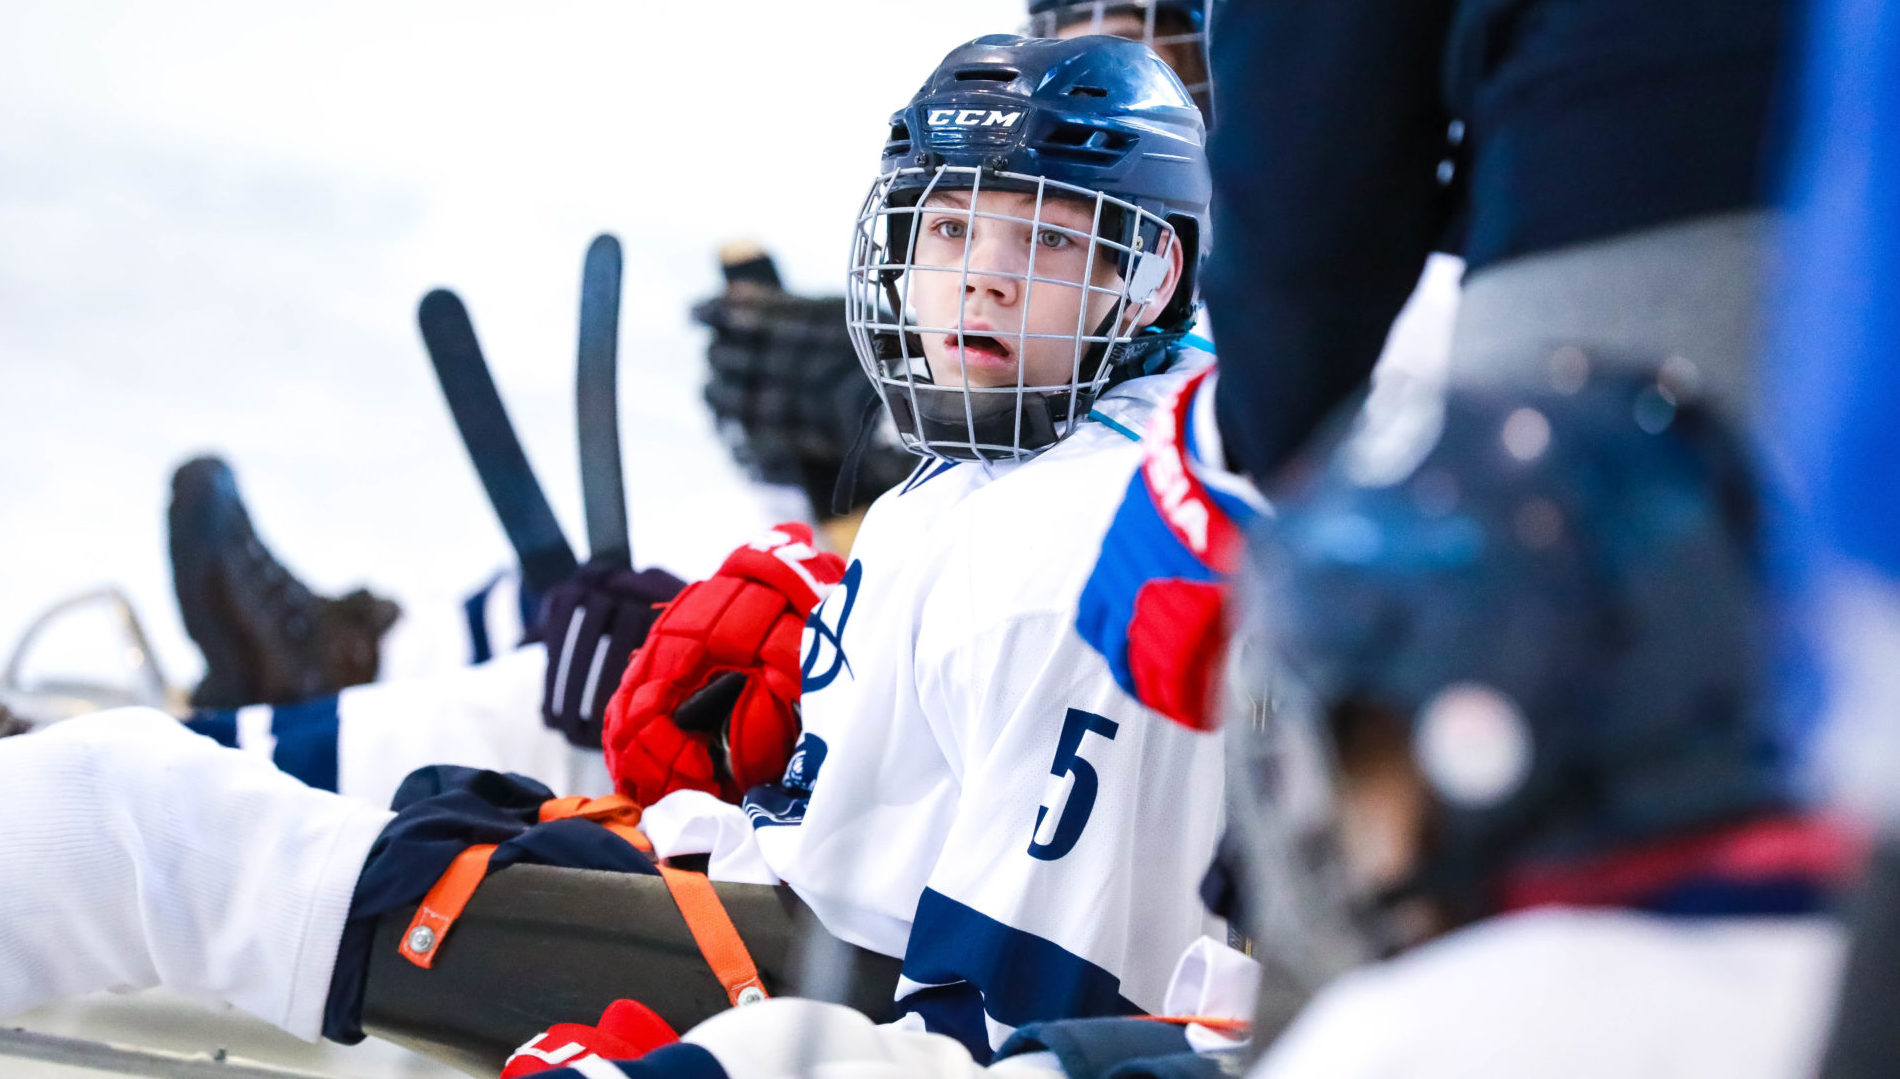 MCU researchers studied the influence of hockey on child development